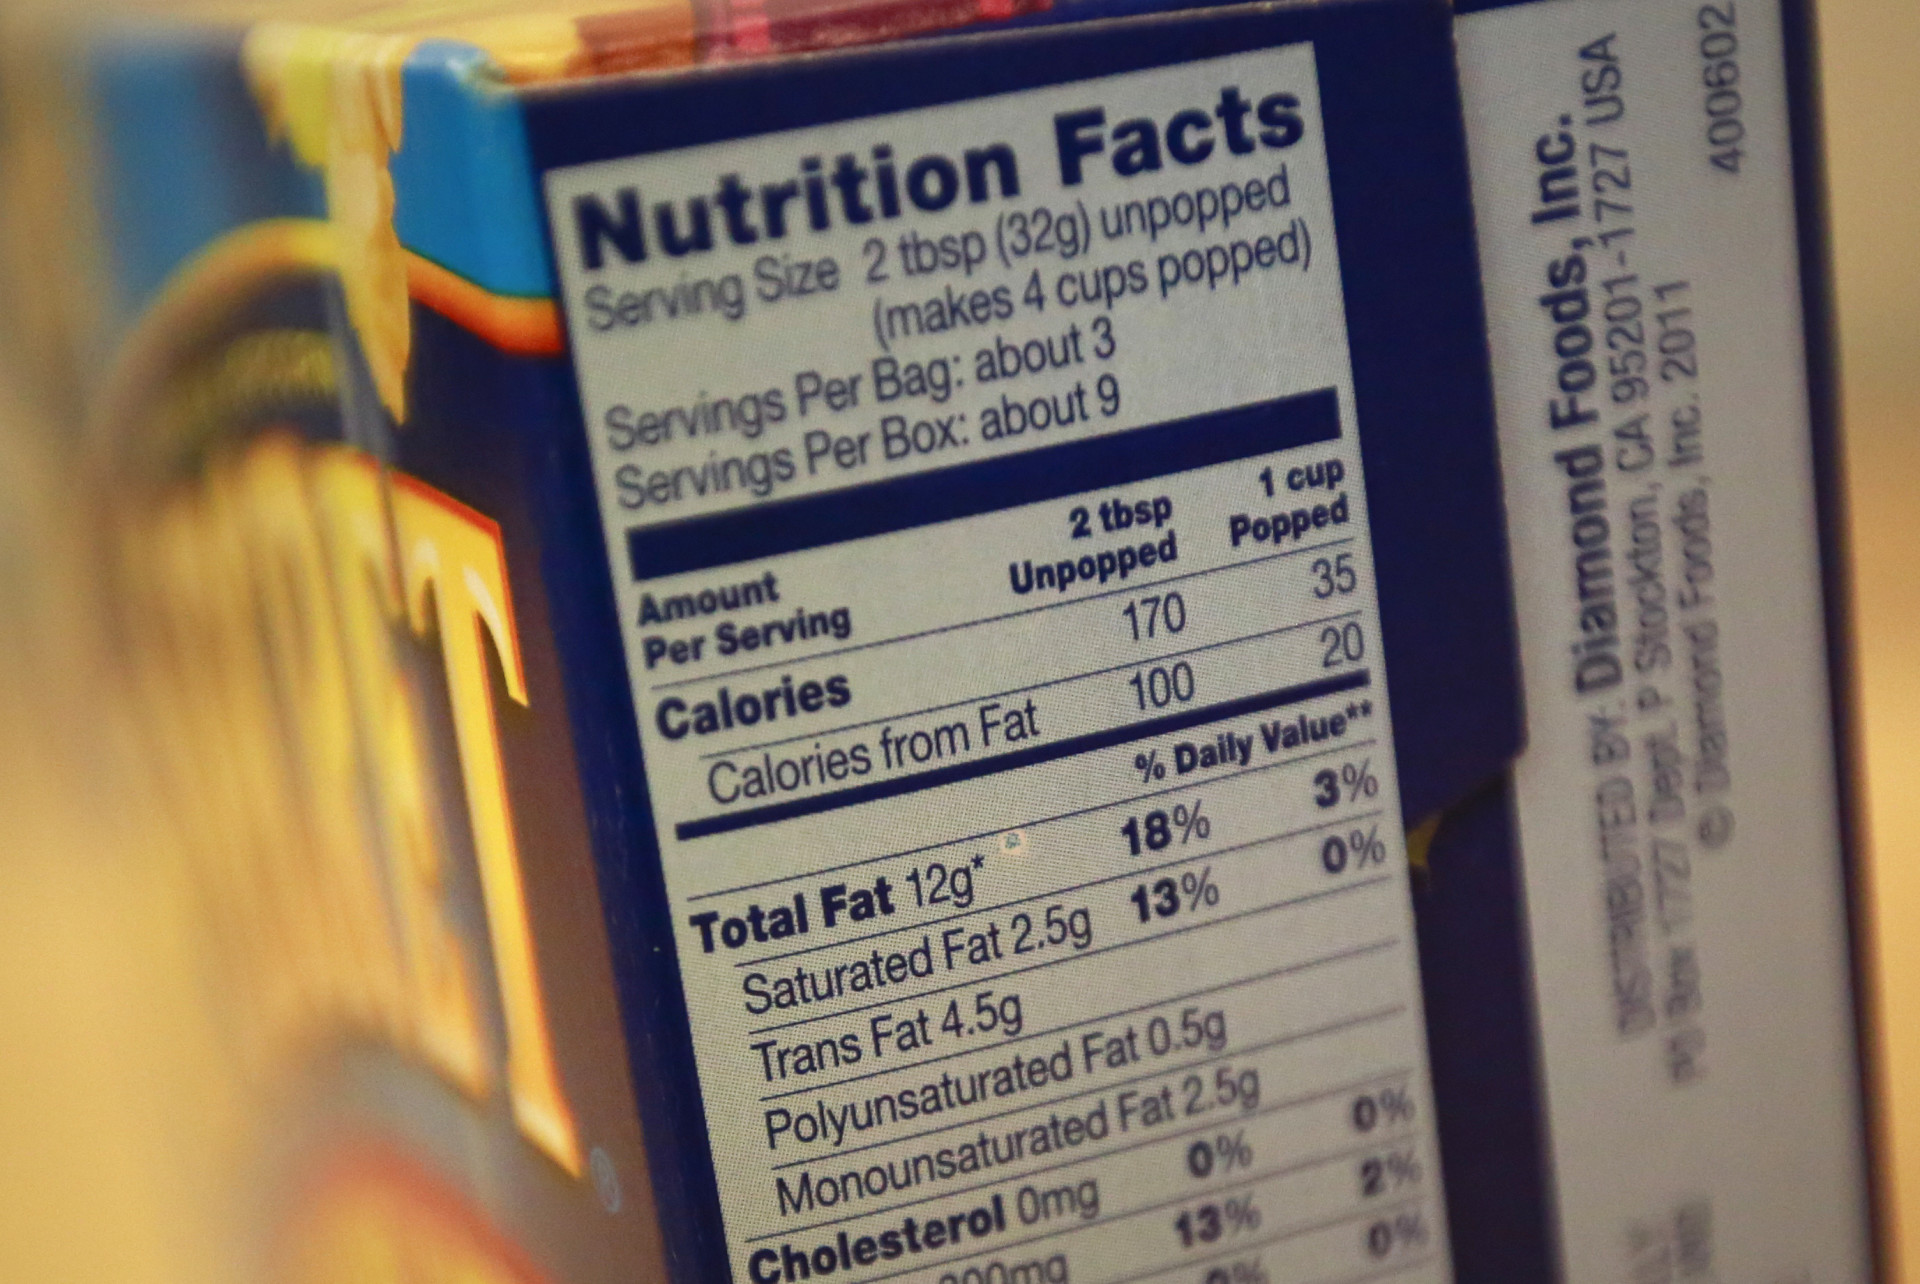 Microwave popcorn containing trans fats from November 2013. The Grocery Manufacturers Association says the industry has lowered the amount of trans fat added to food products by more than 86 percent. But trans fats can still be found in some processed food items.